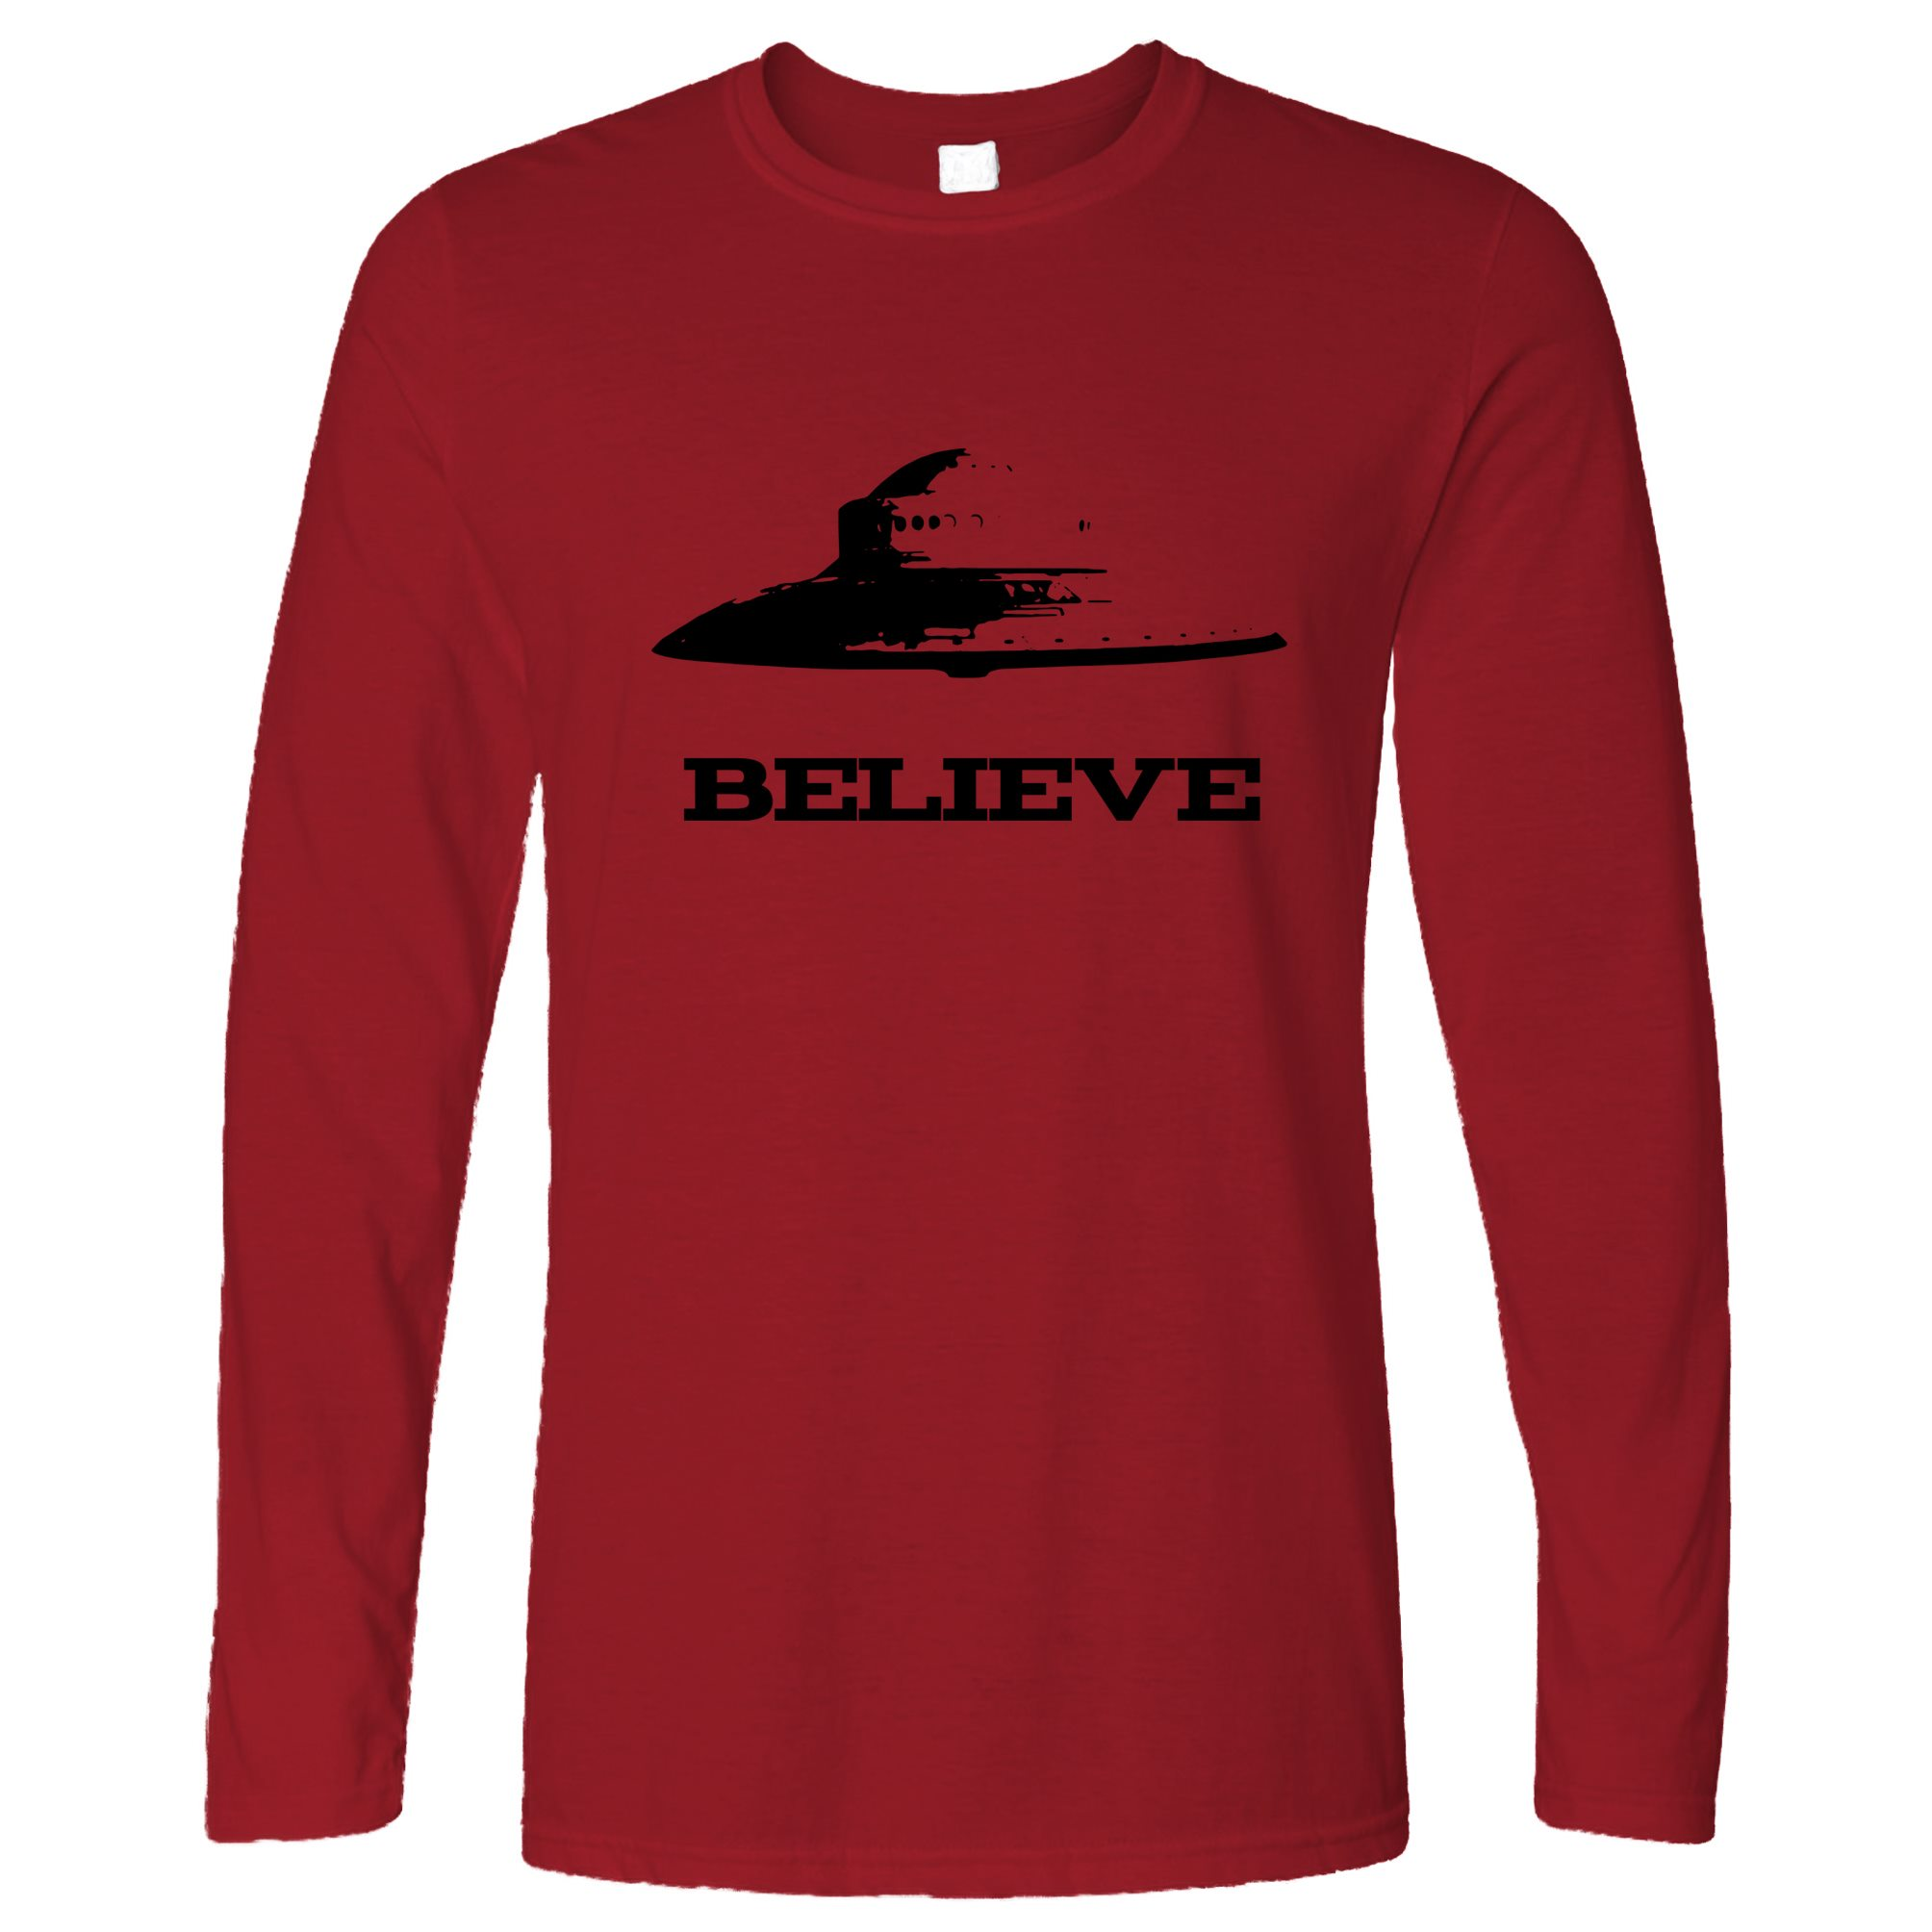 Believe-UFO-Flying-Saucer-Nerd-Geek-Science-Sci-Fi-Alien-Space-Long-Sleeve